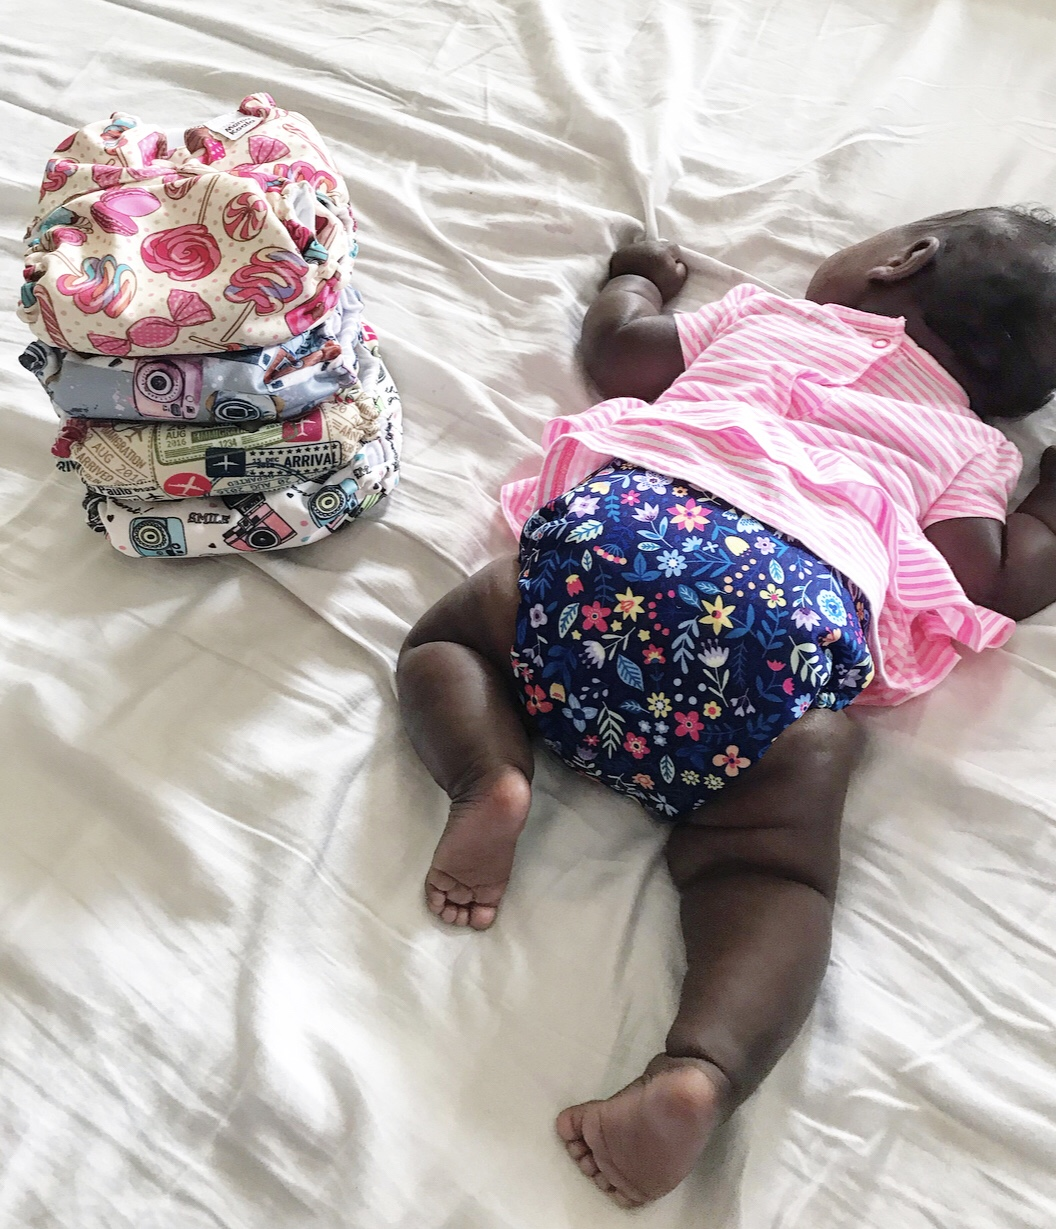 Cloth Diapering Made Easy – Types of cloth diapers explained